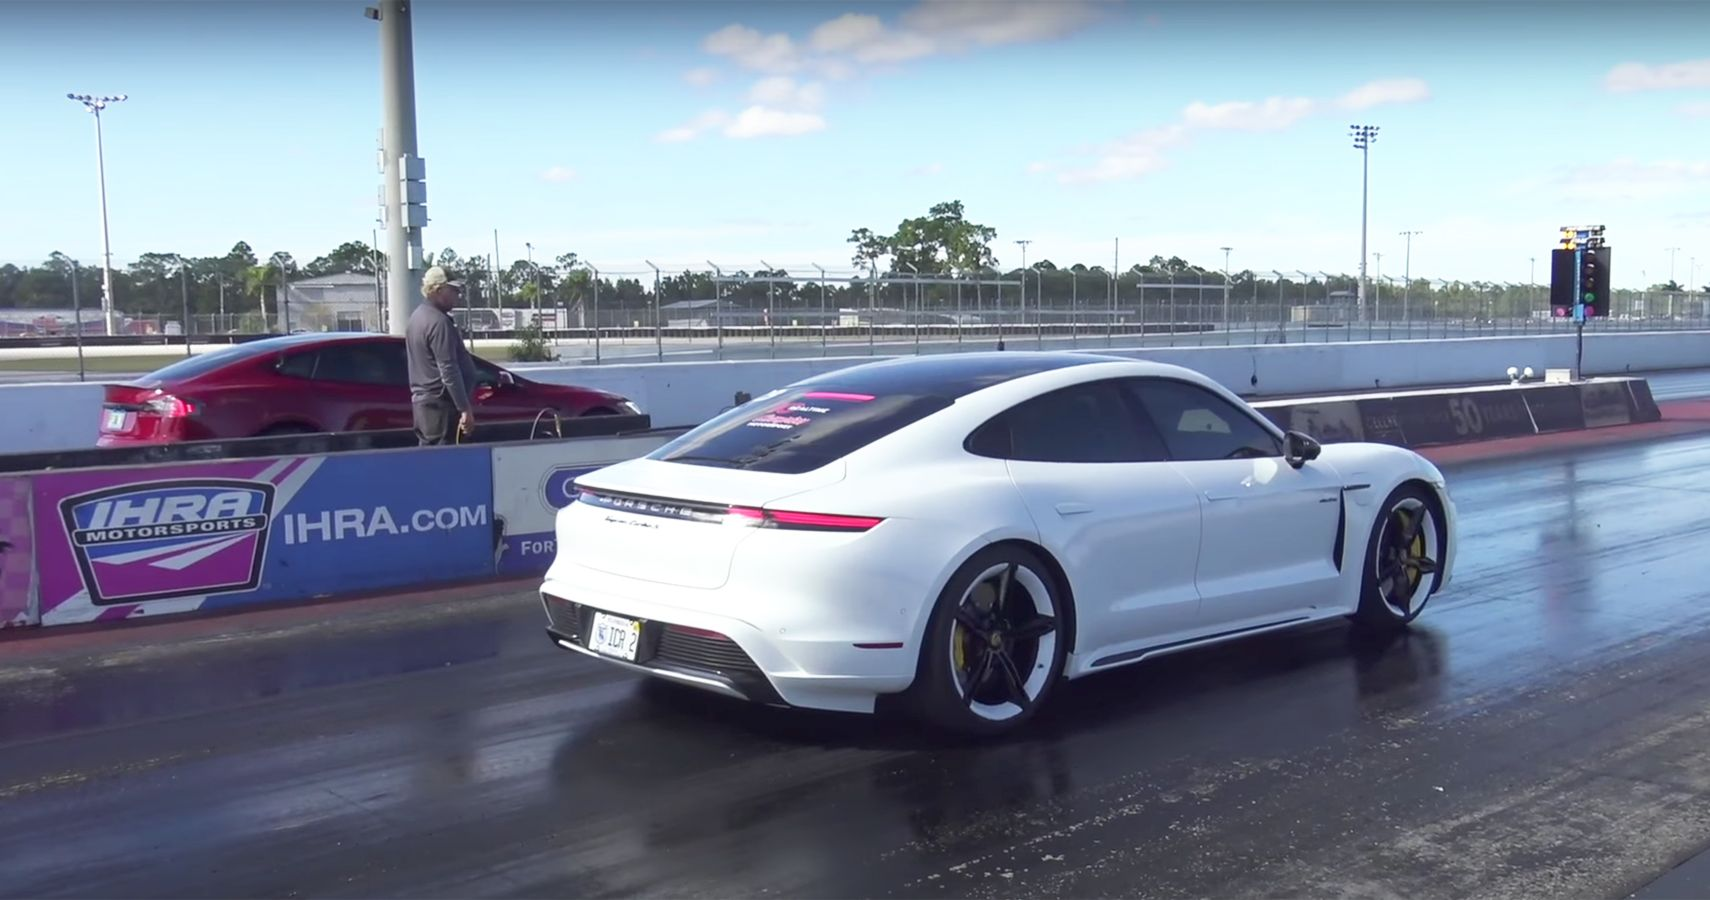 Porsche Taycan Turbo S And Tesla Model S Performance With Cheetah Stance In 1st Official Drag Race